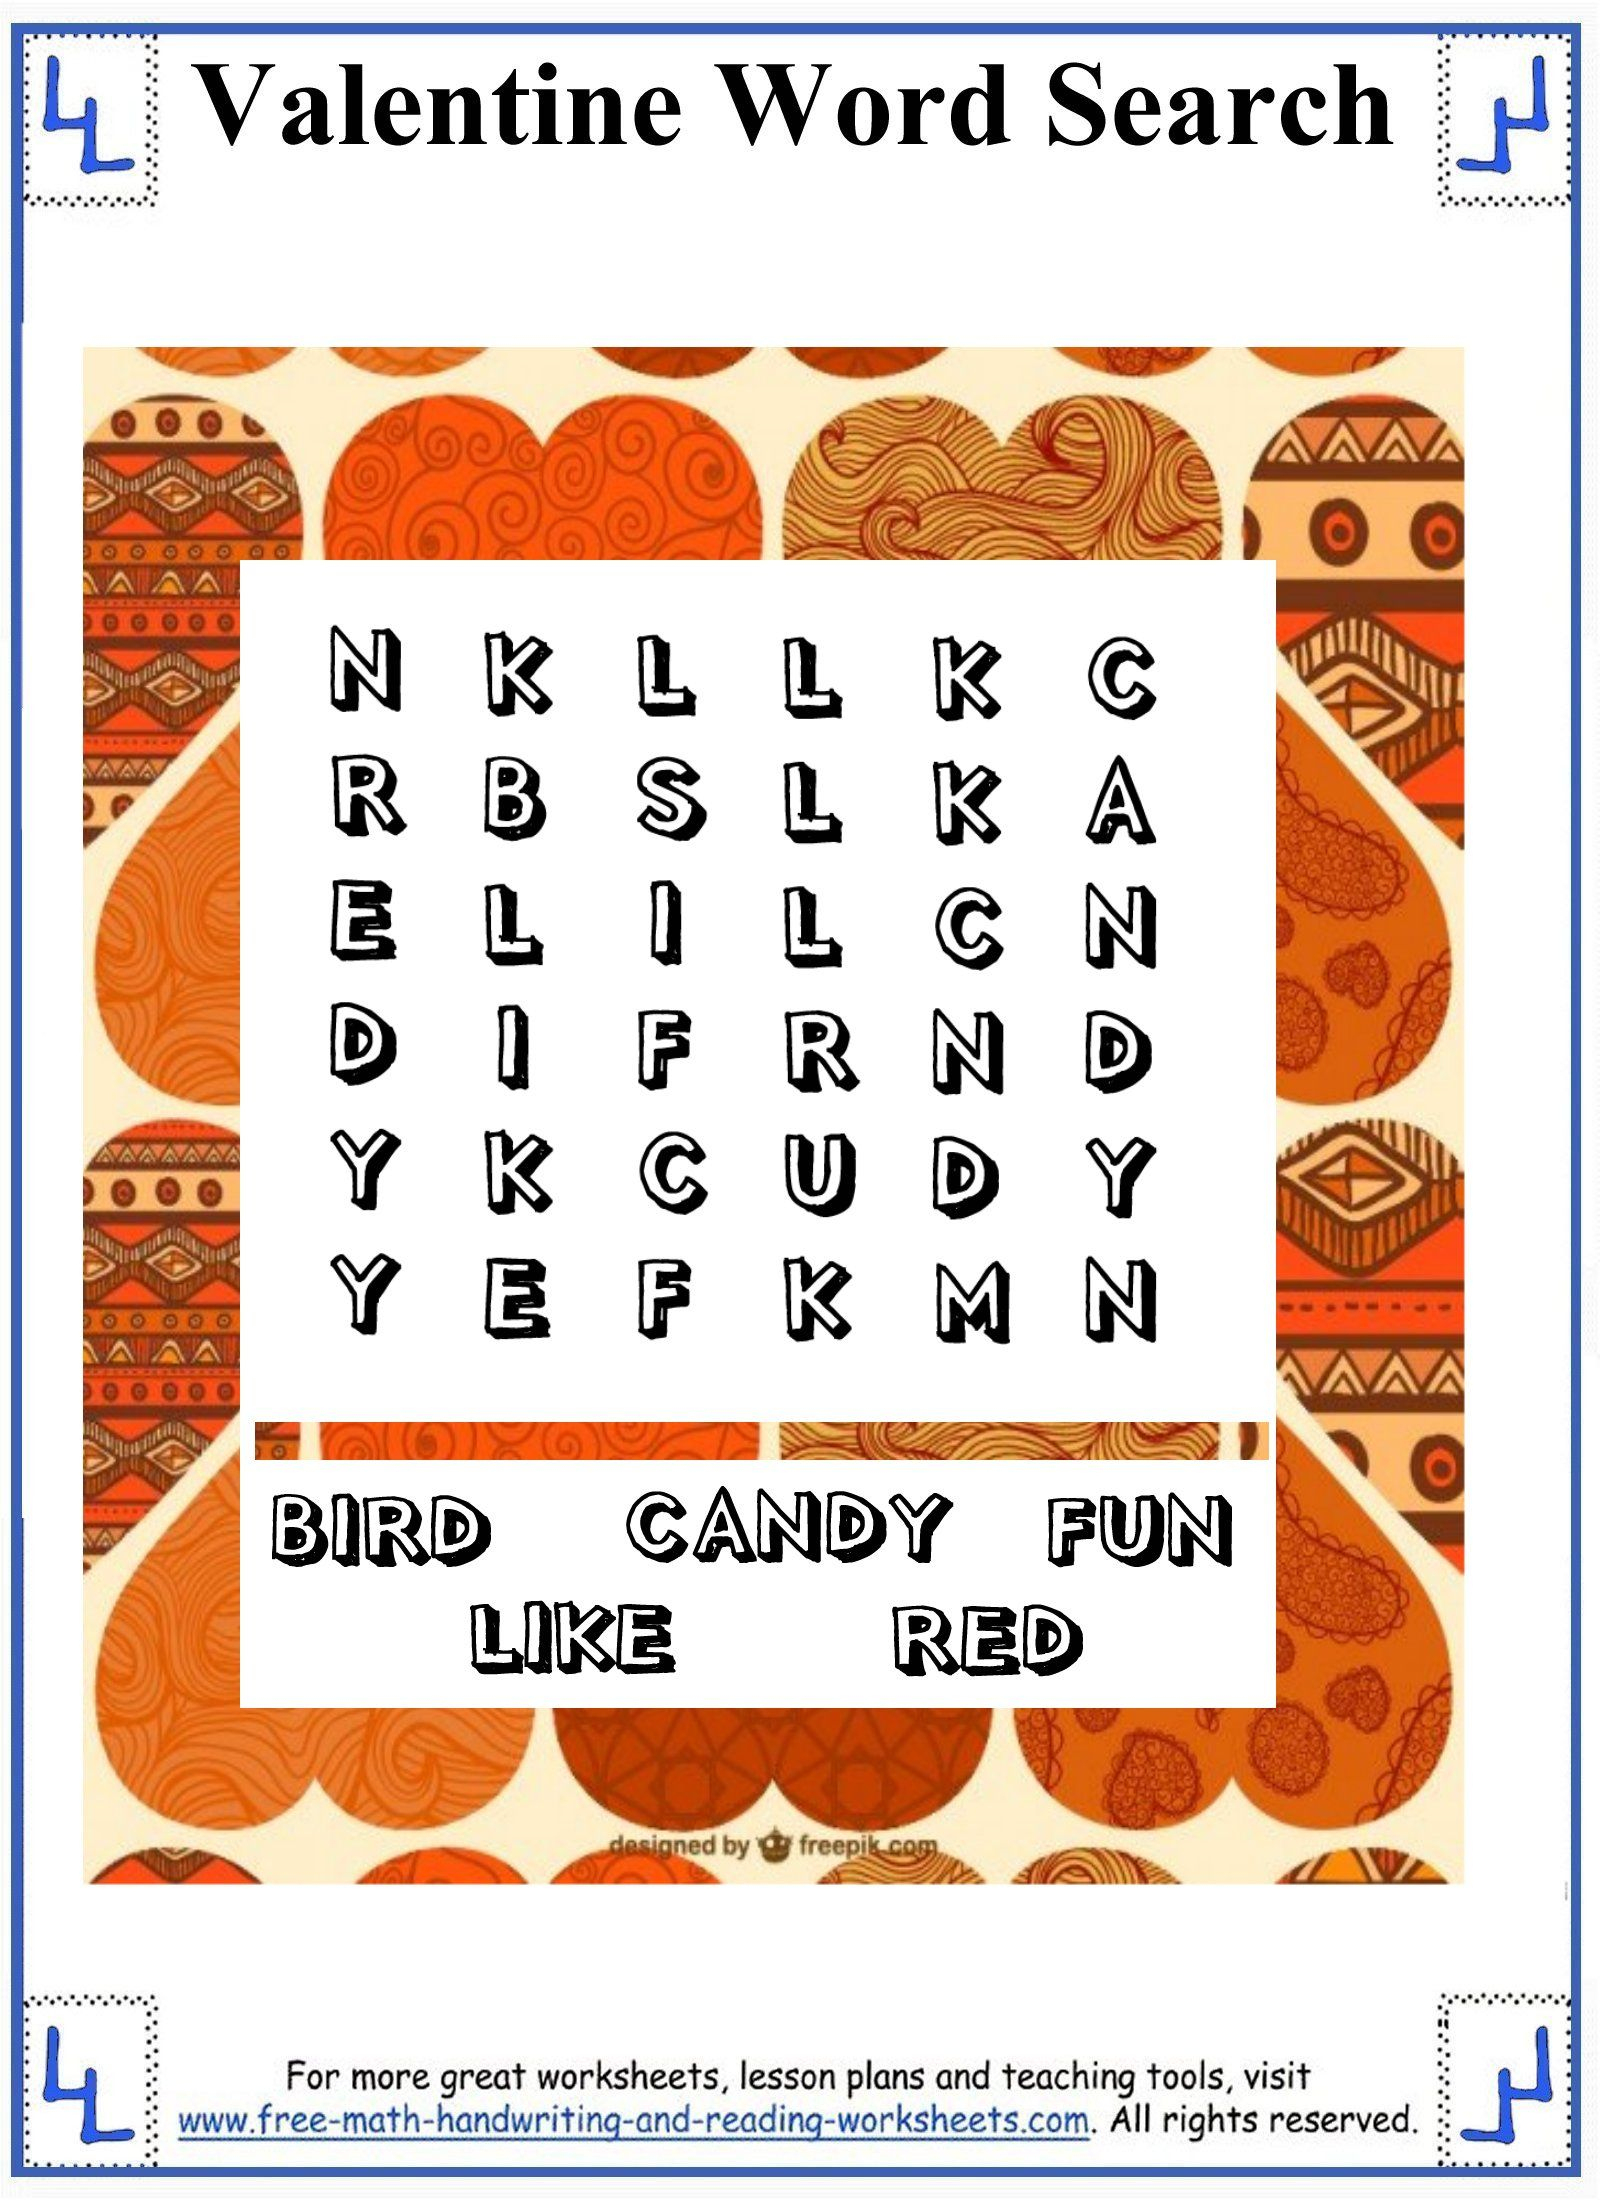 Valentine Word Search - Printable Puzzles - Small Word Search Grid - Printable Puzzles For First Grade